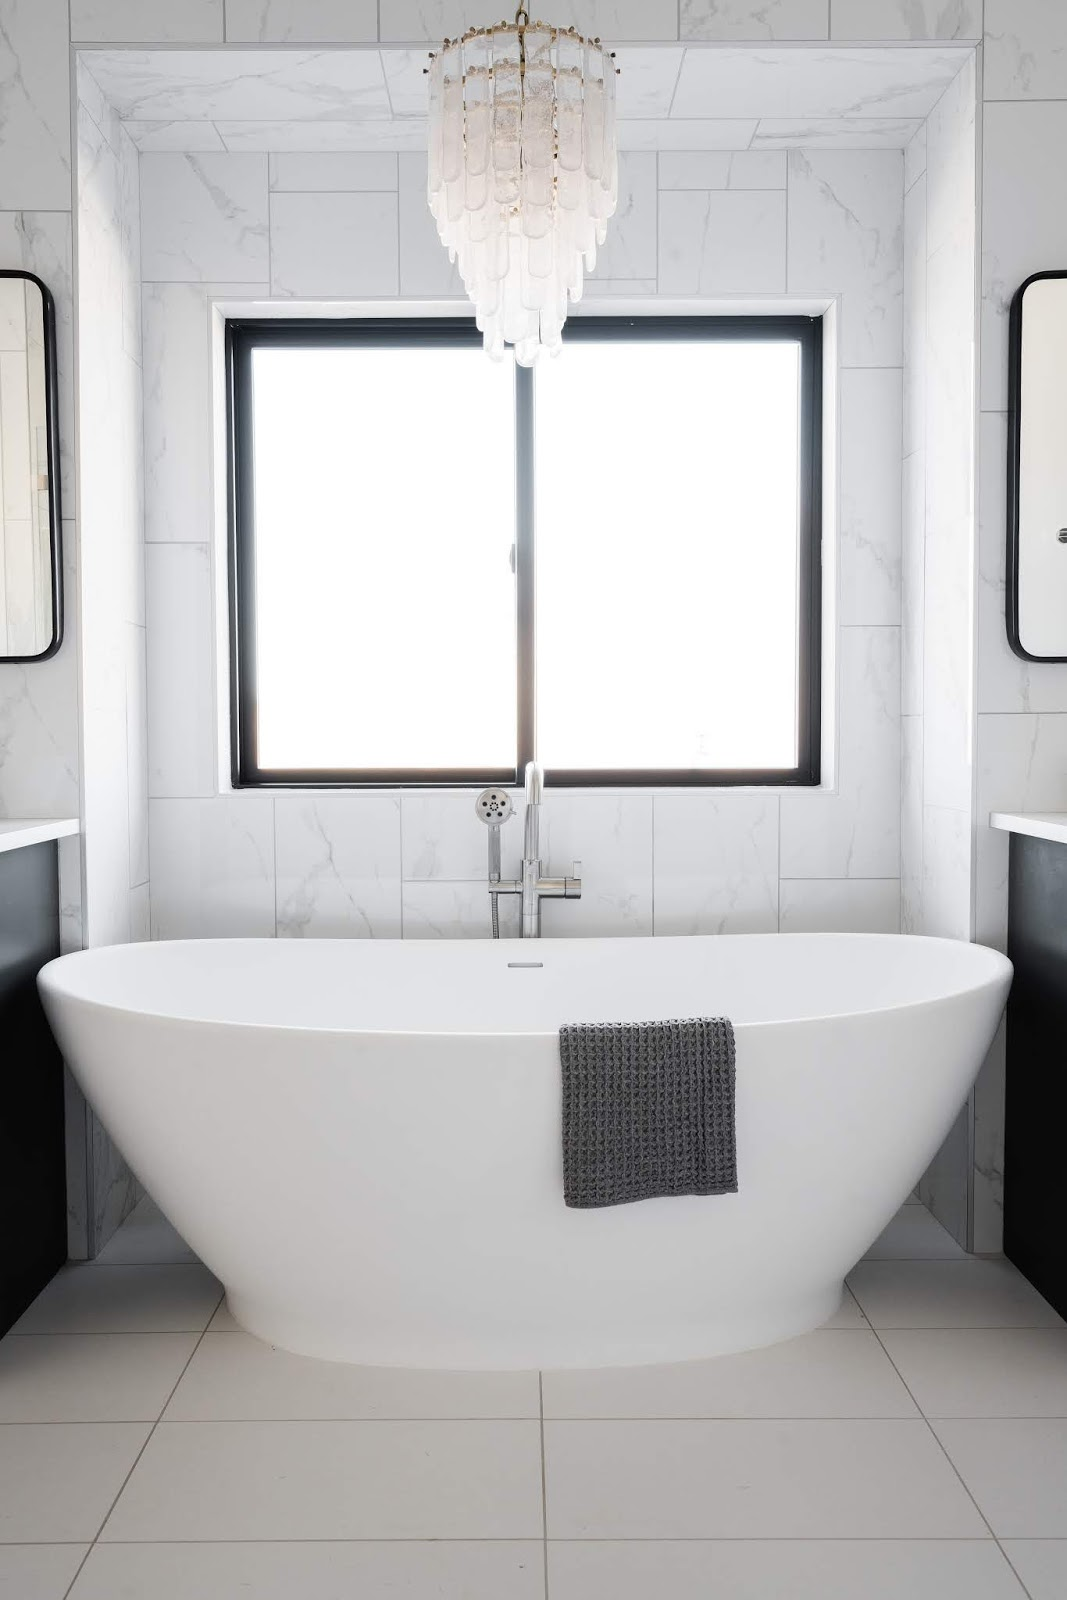 Master Bathroom Bathtub, Modern Bathtub